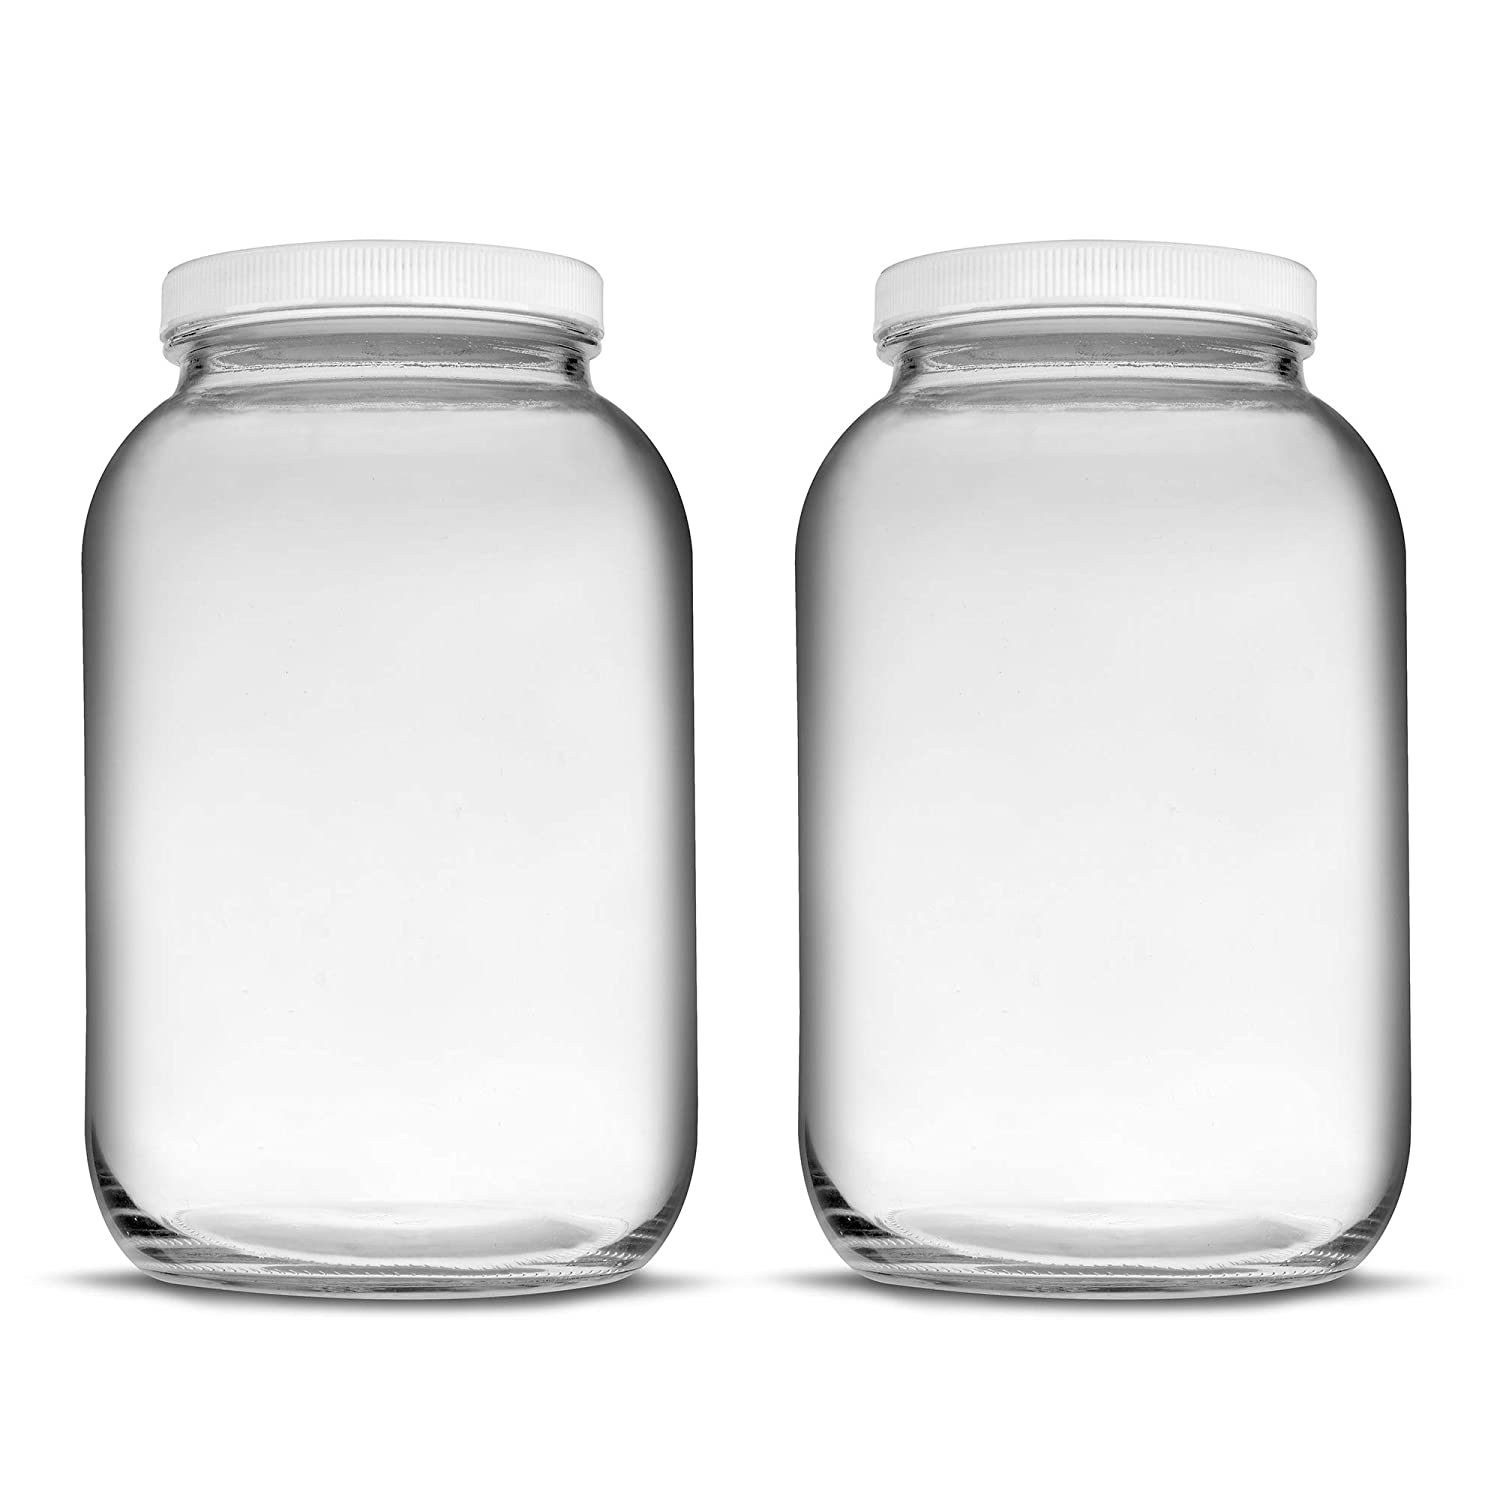 Teikis 2-Pack Wide-Mouth 1 Gallon Glass Jar with 4